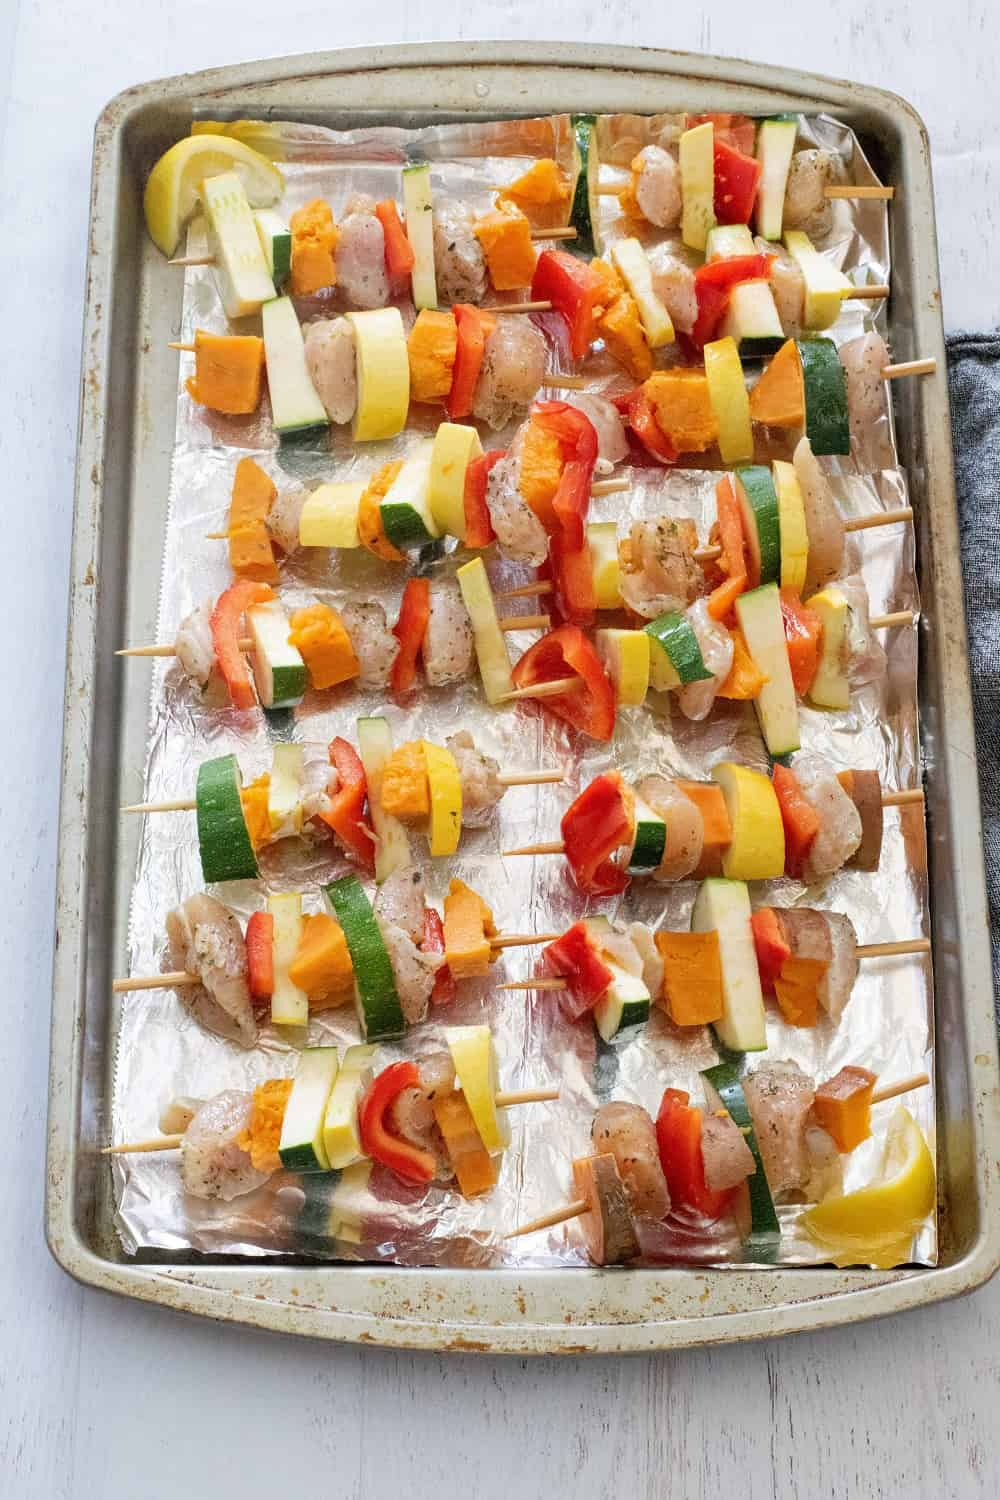 Raw chicken and veggies on skewers before making chicken kabob recipe in oven